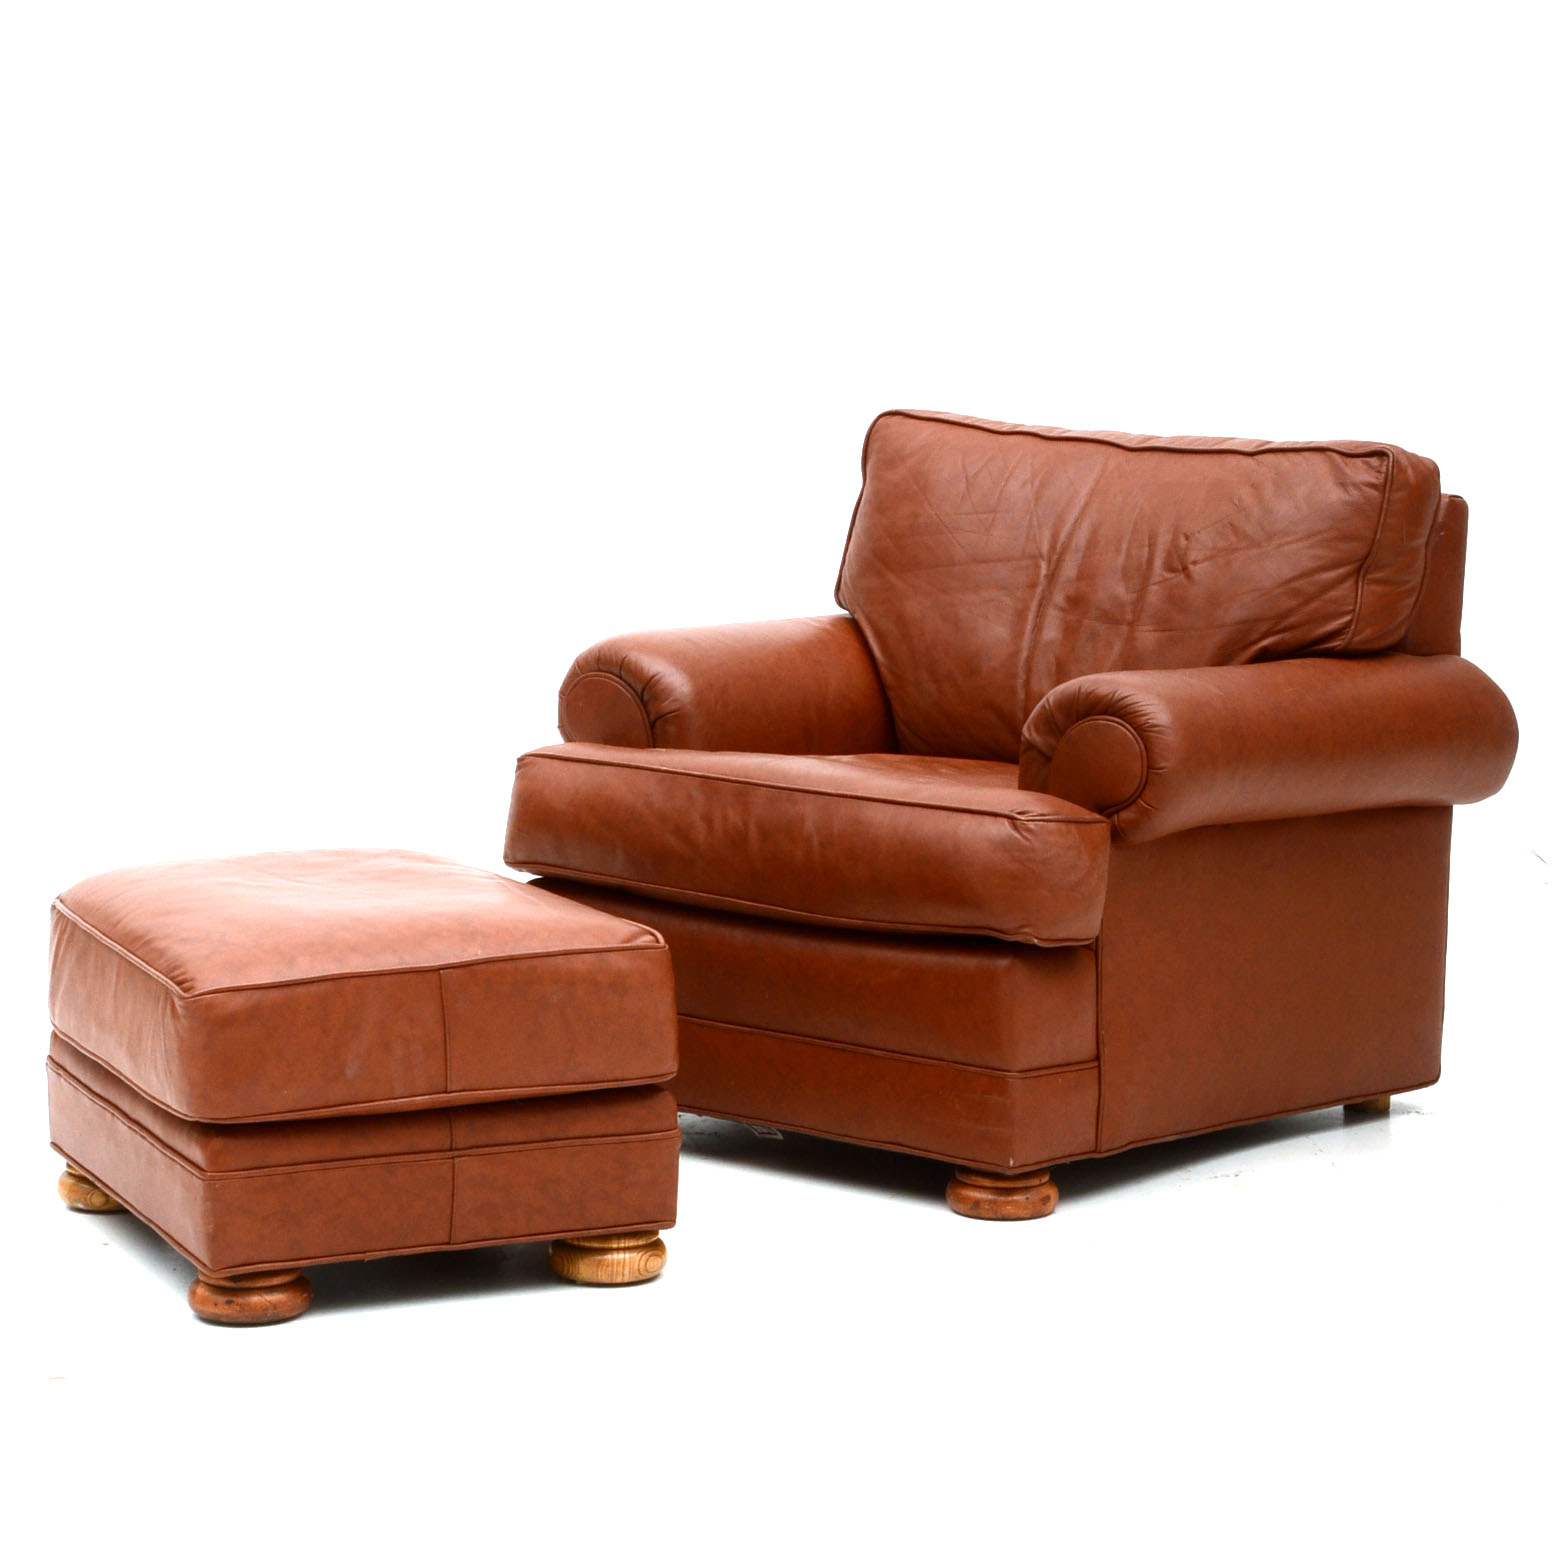 cheap leather wingback chairs portable living room furniture alluring chair and ottoman for cozy